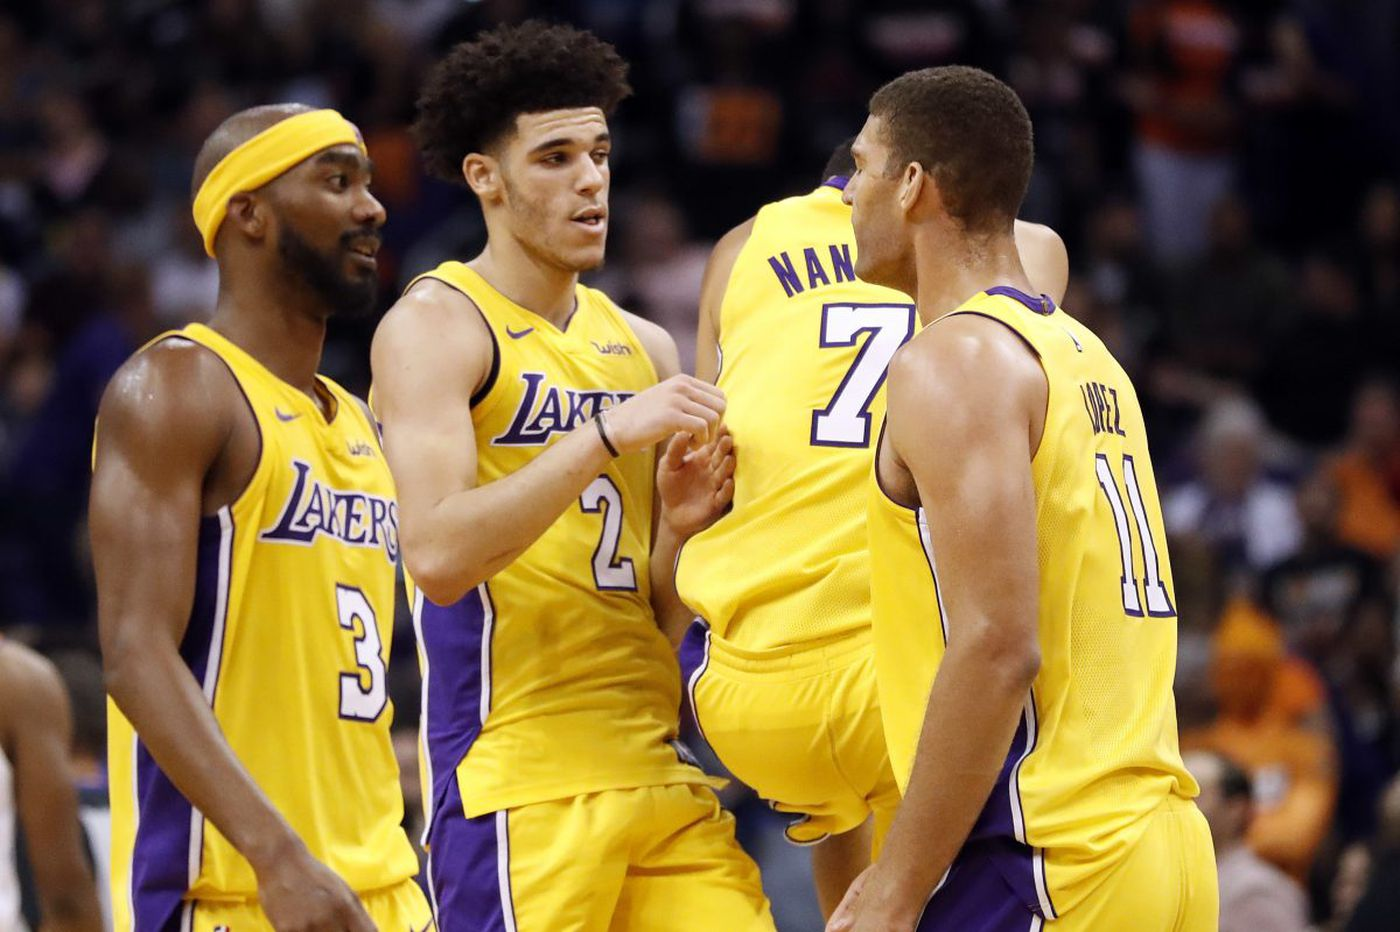 Sports Tonight: Celtics-Lakers rivalry building back toward old days